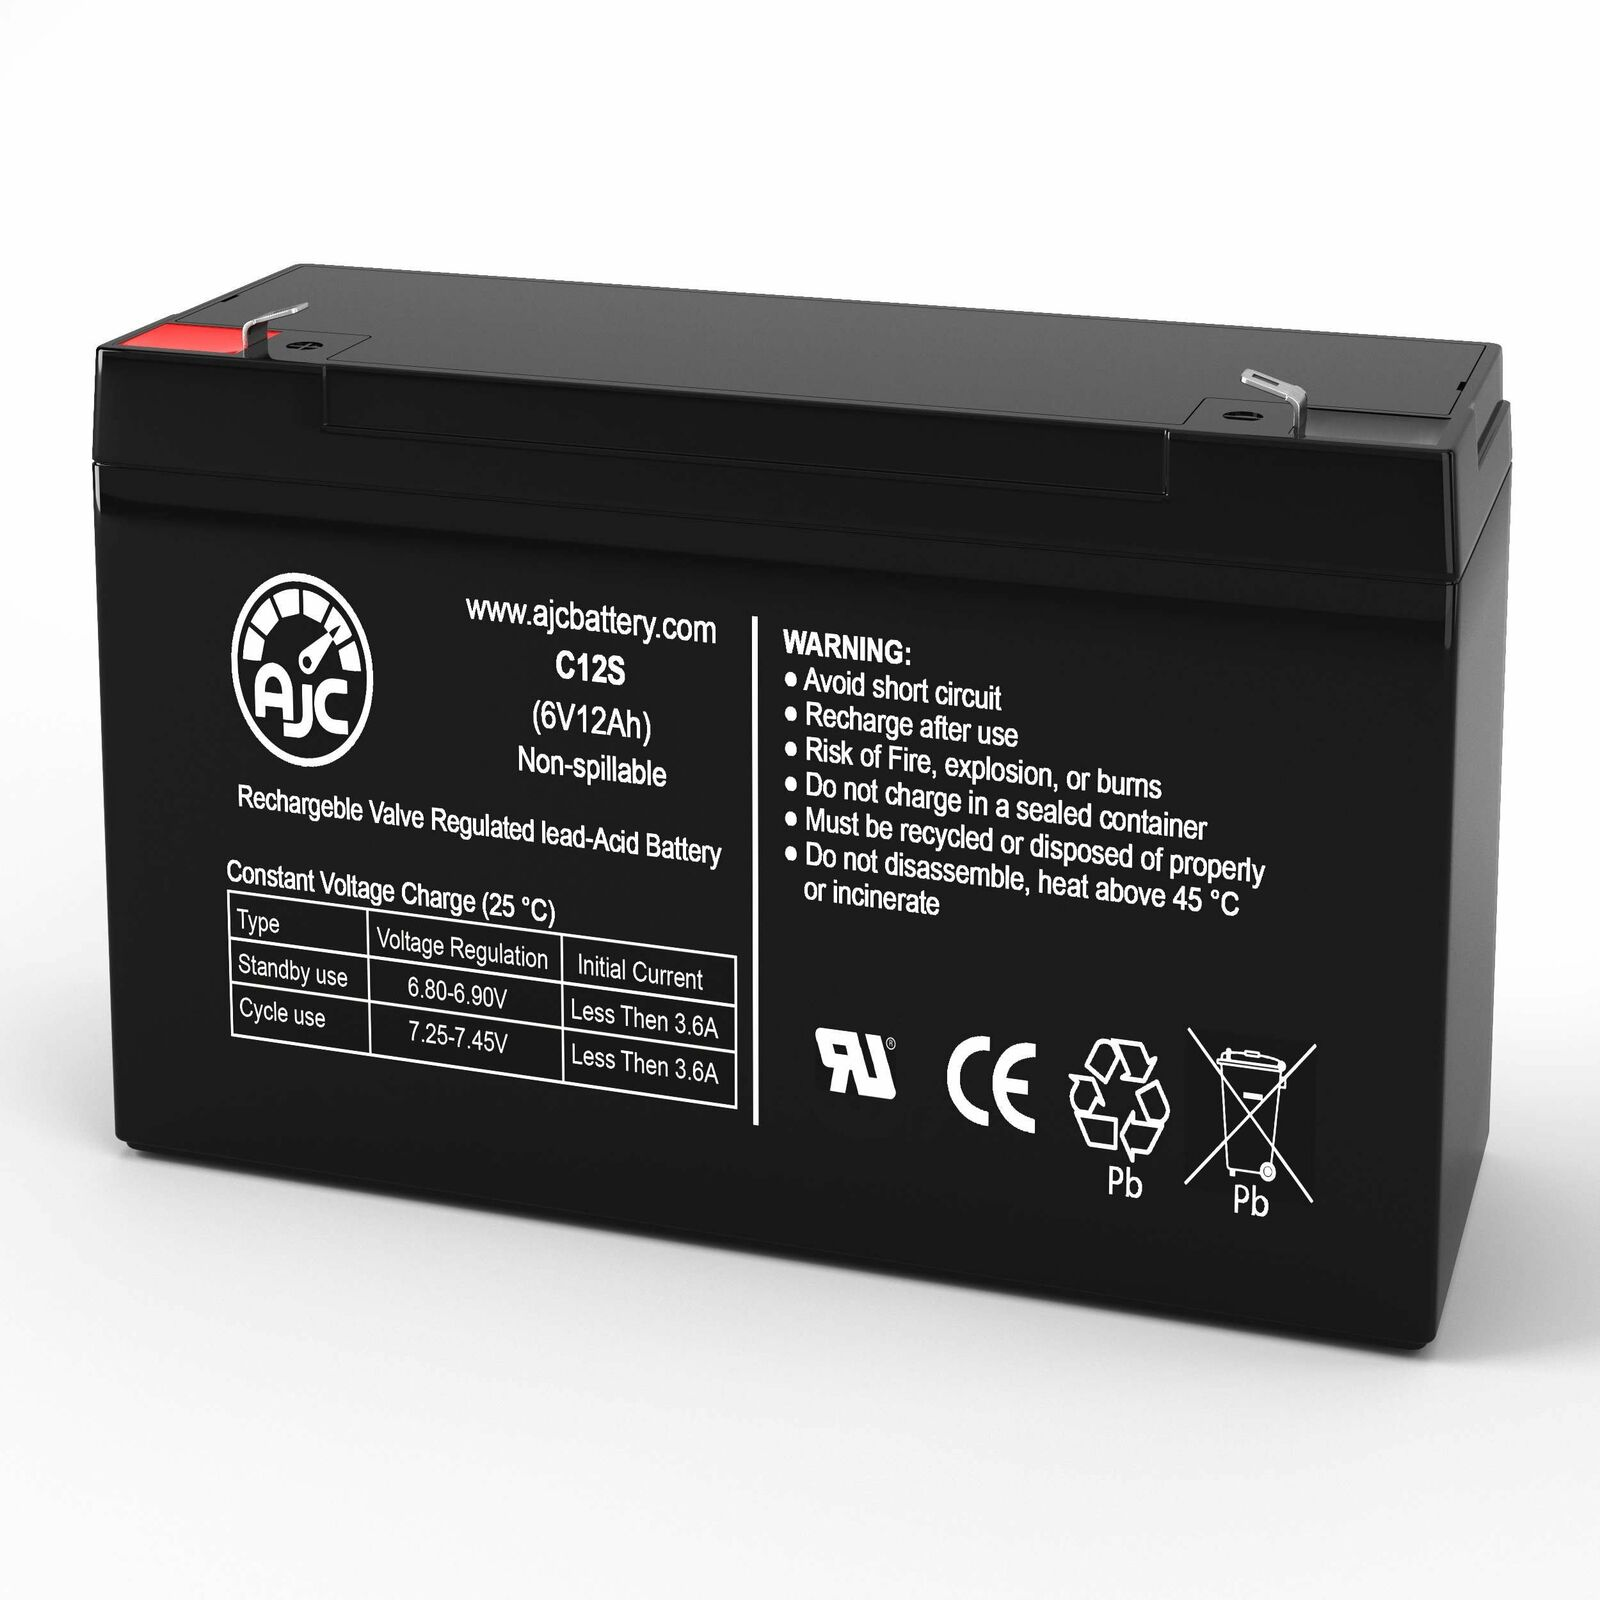 Lithonia ELB-06010 6V 12Ah Emergency Light Replacement Battery